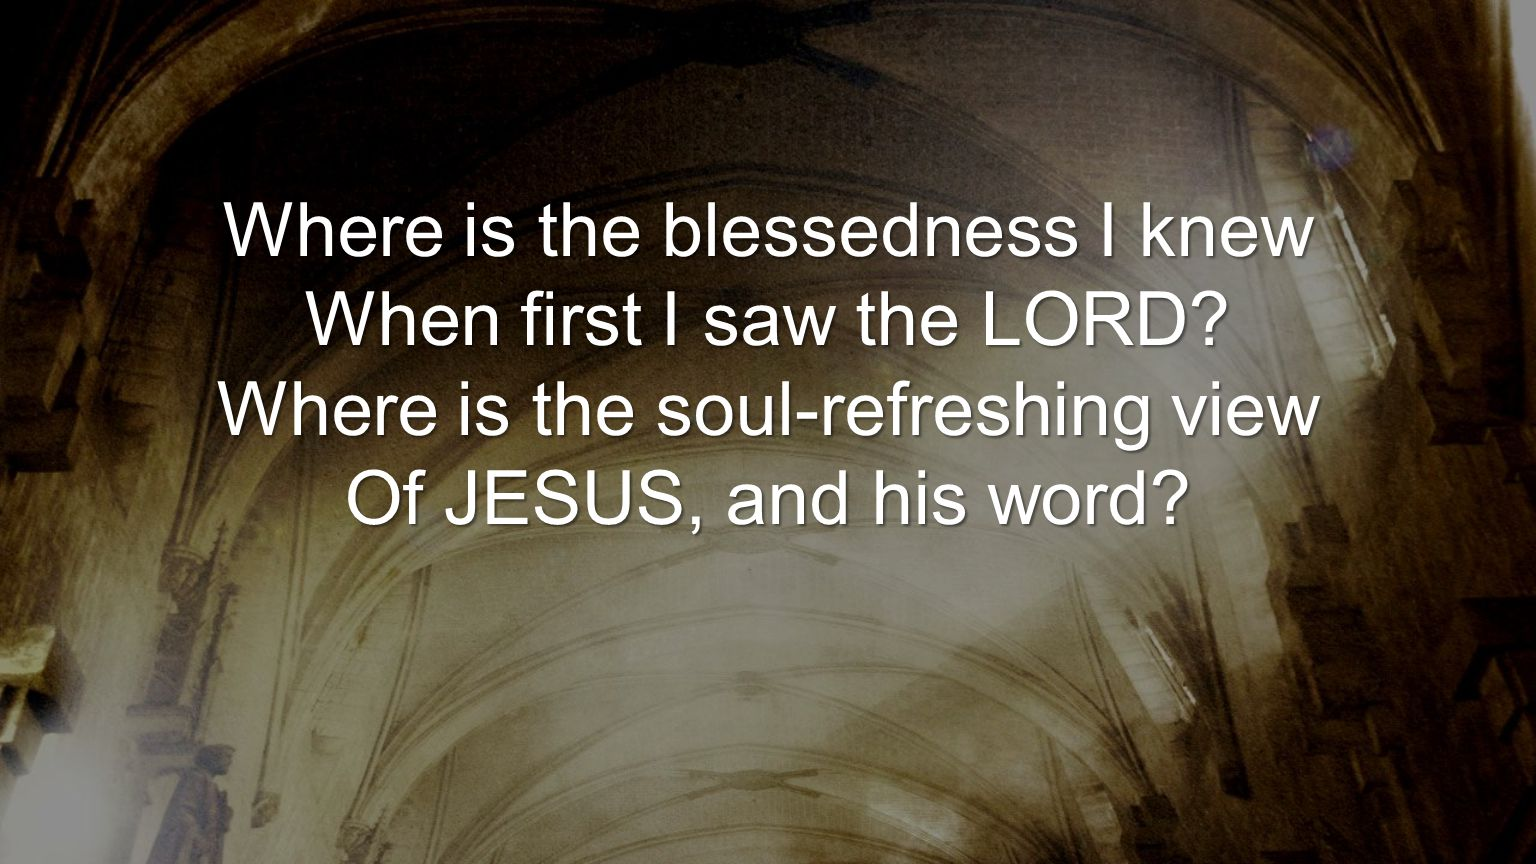 Where is the blessedness I knew When first I saw the LORD? Where is the soul-refreshing view Of JESUS, and his word?